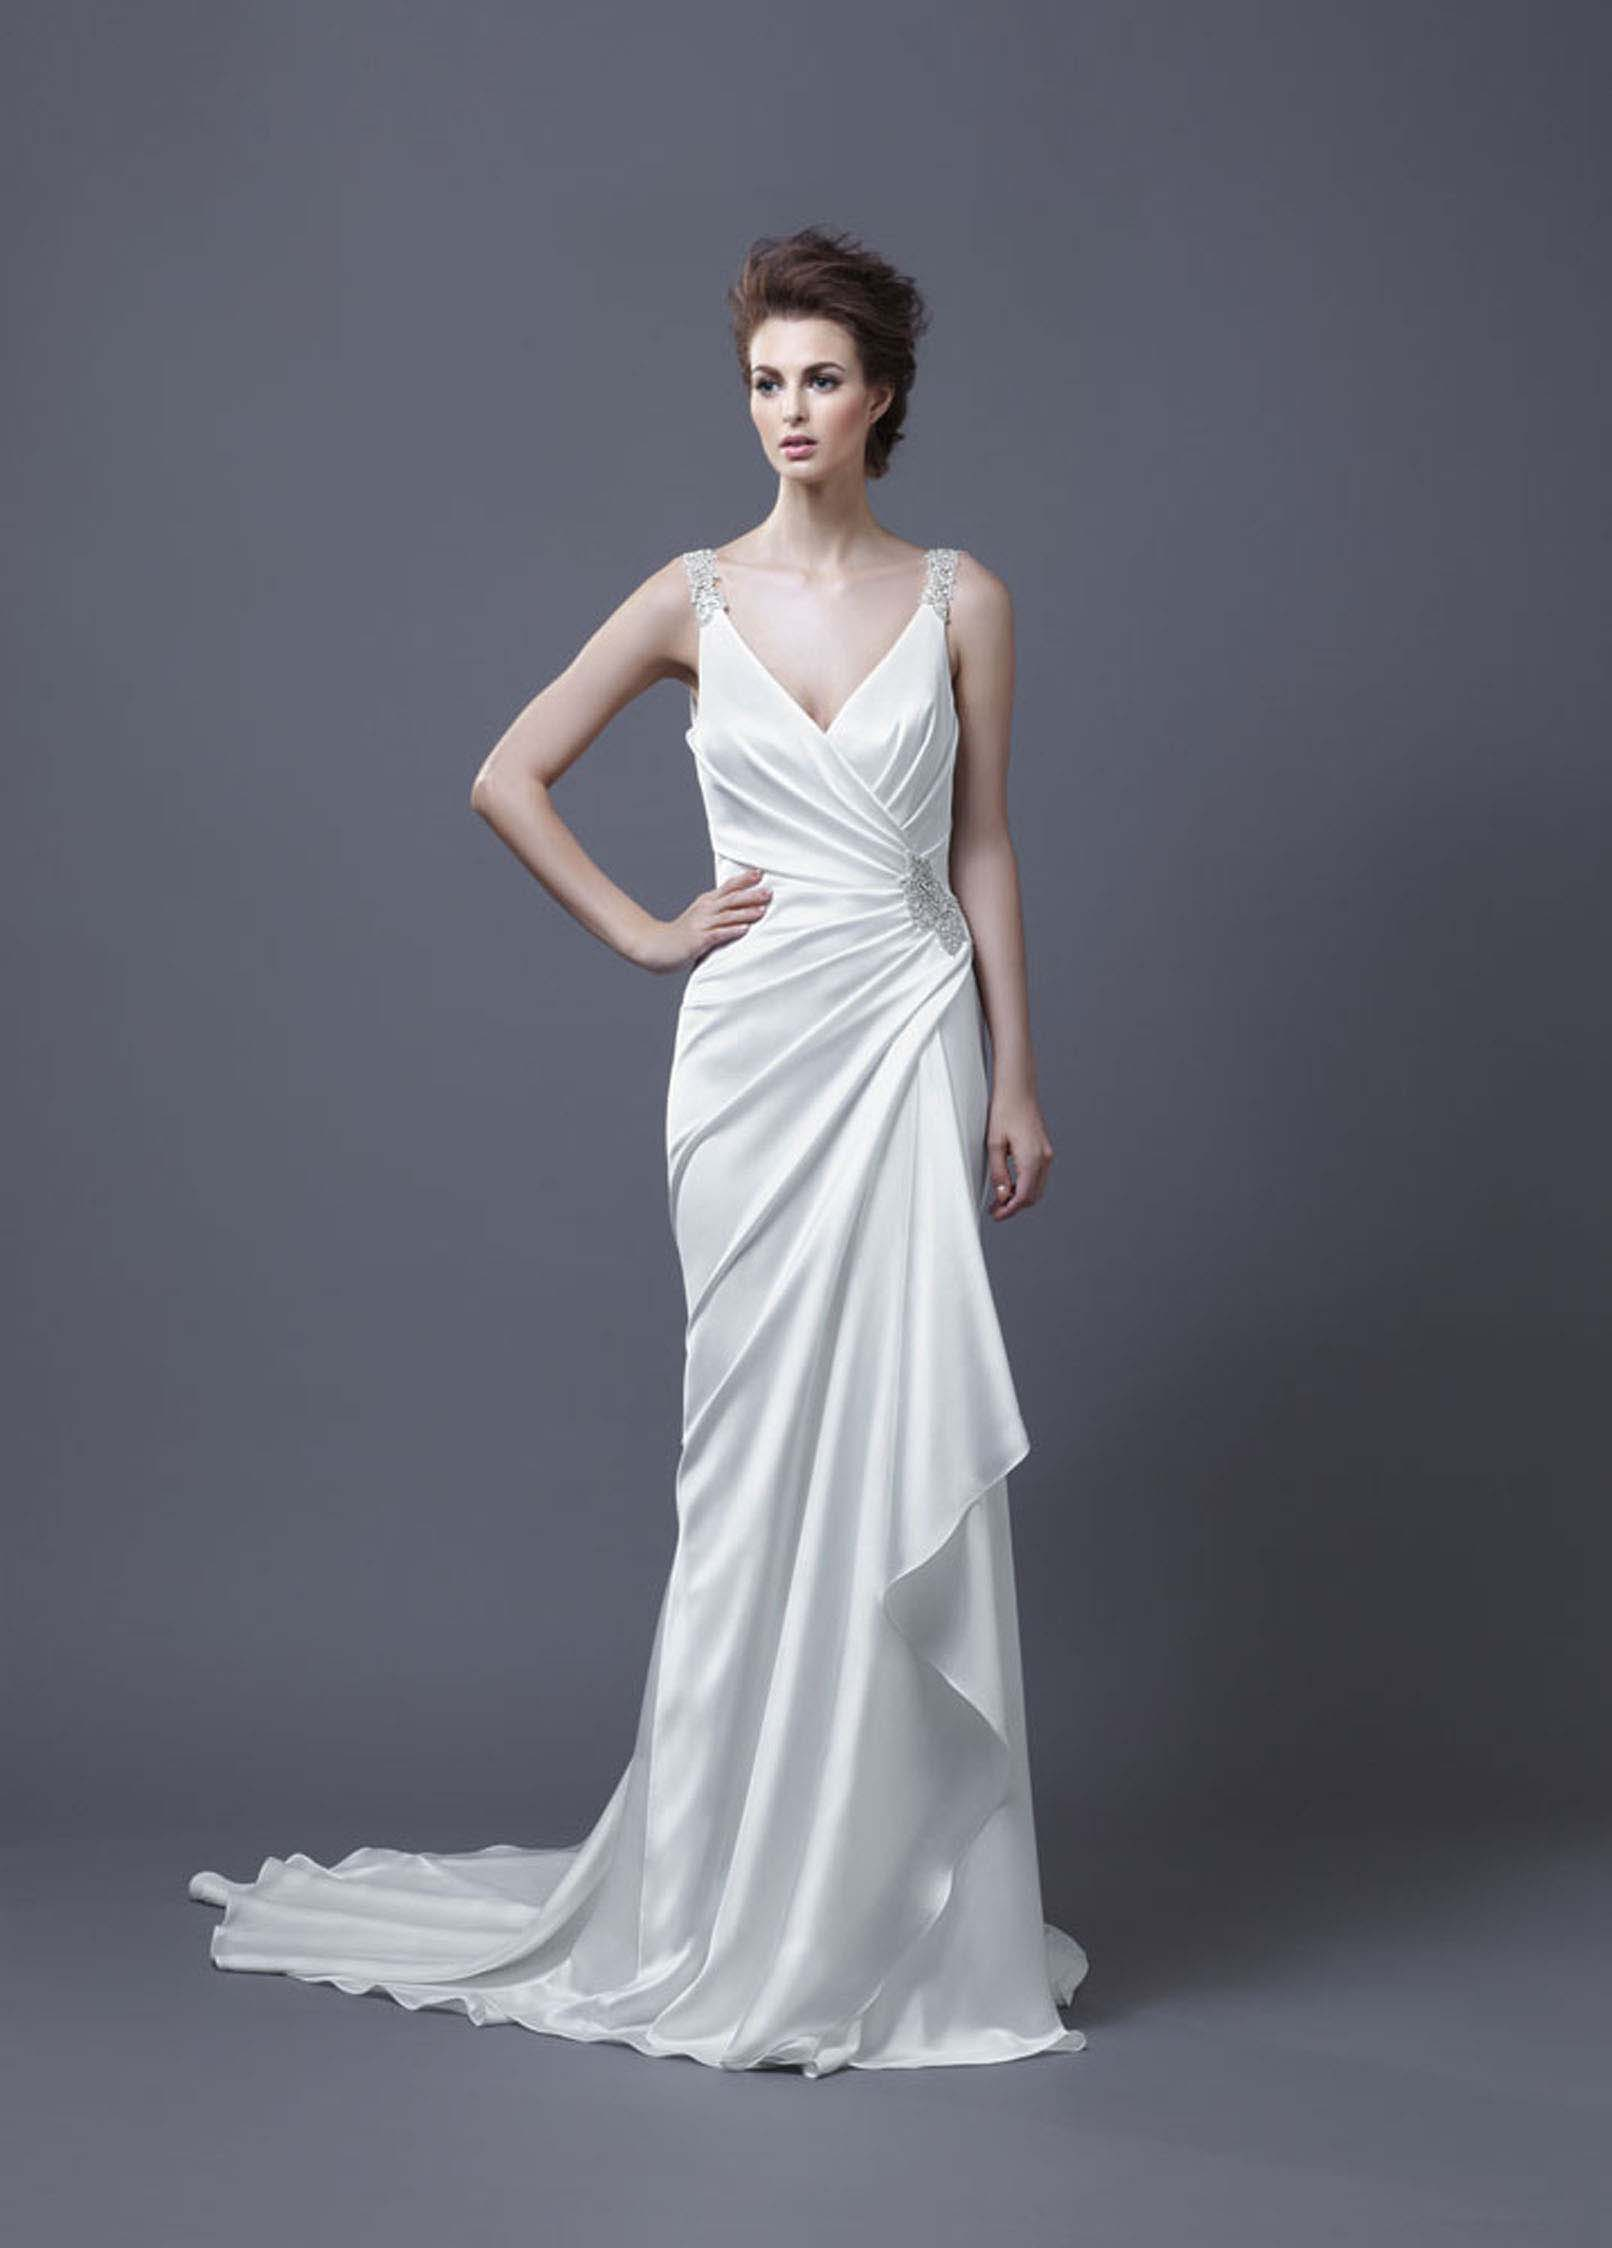 2013-wedding-dress-by-enzoani-bridal-harmony.original